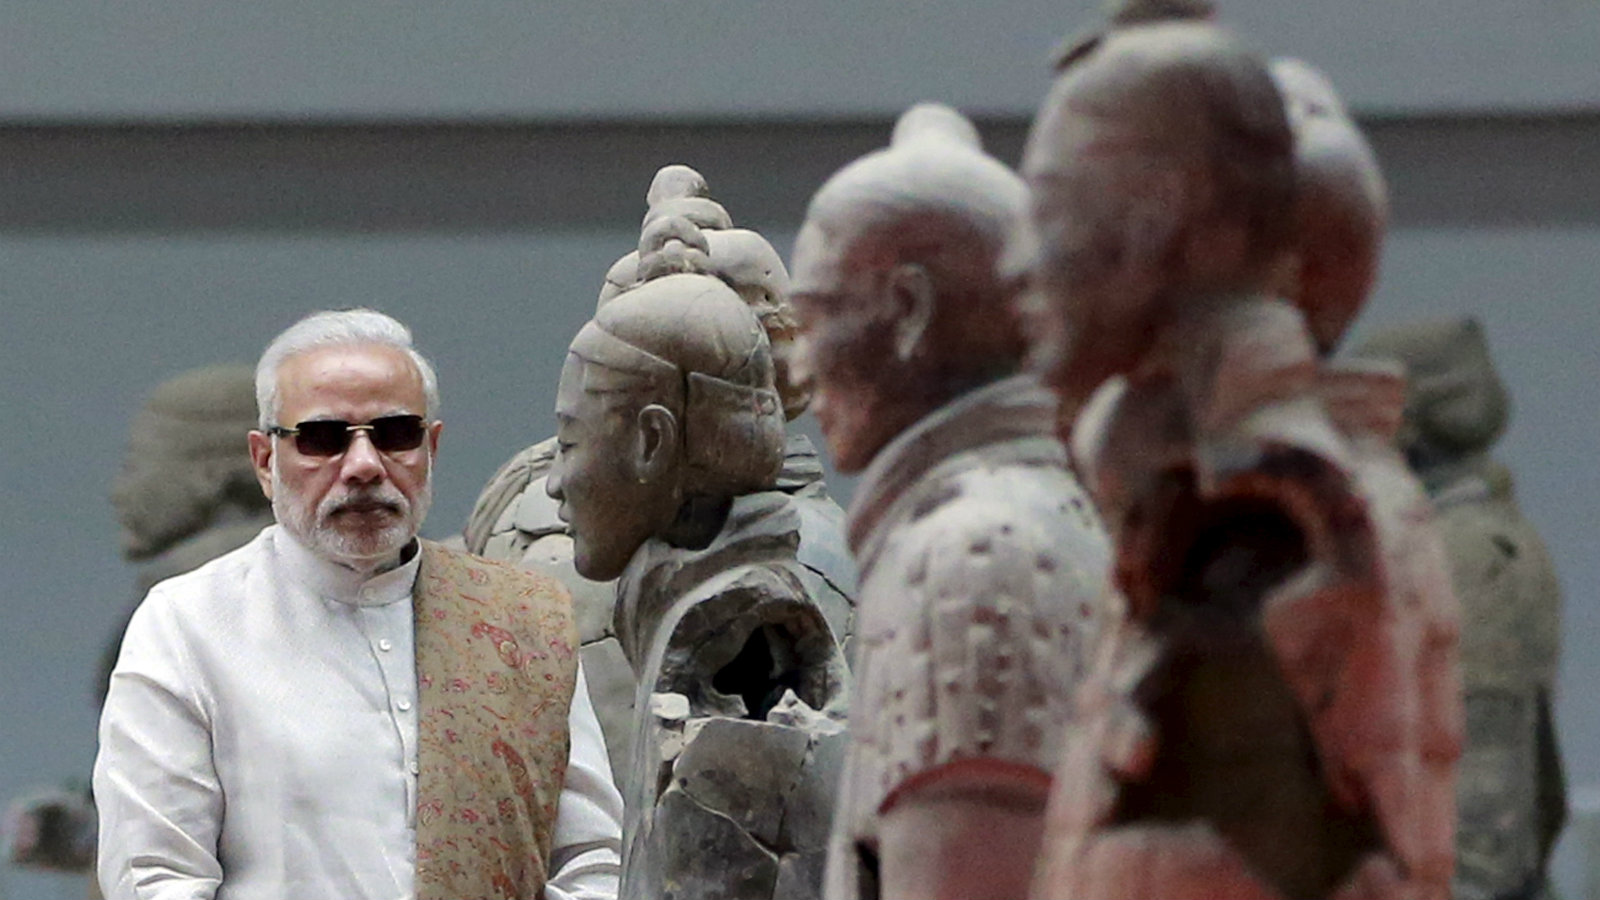 Indian Prime Minister Narendra Modi visits the Museum of Qin Terracotta Warriors and Horses, in Xian, Shaanxi province, China, May 14, 2015.